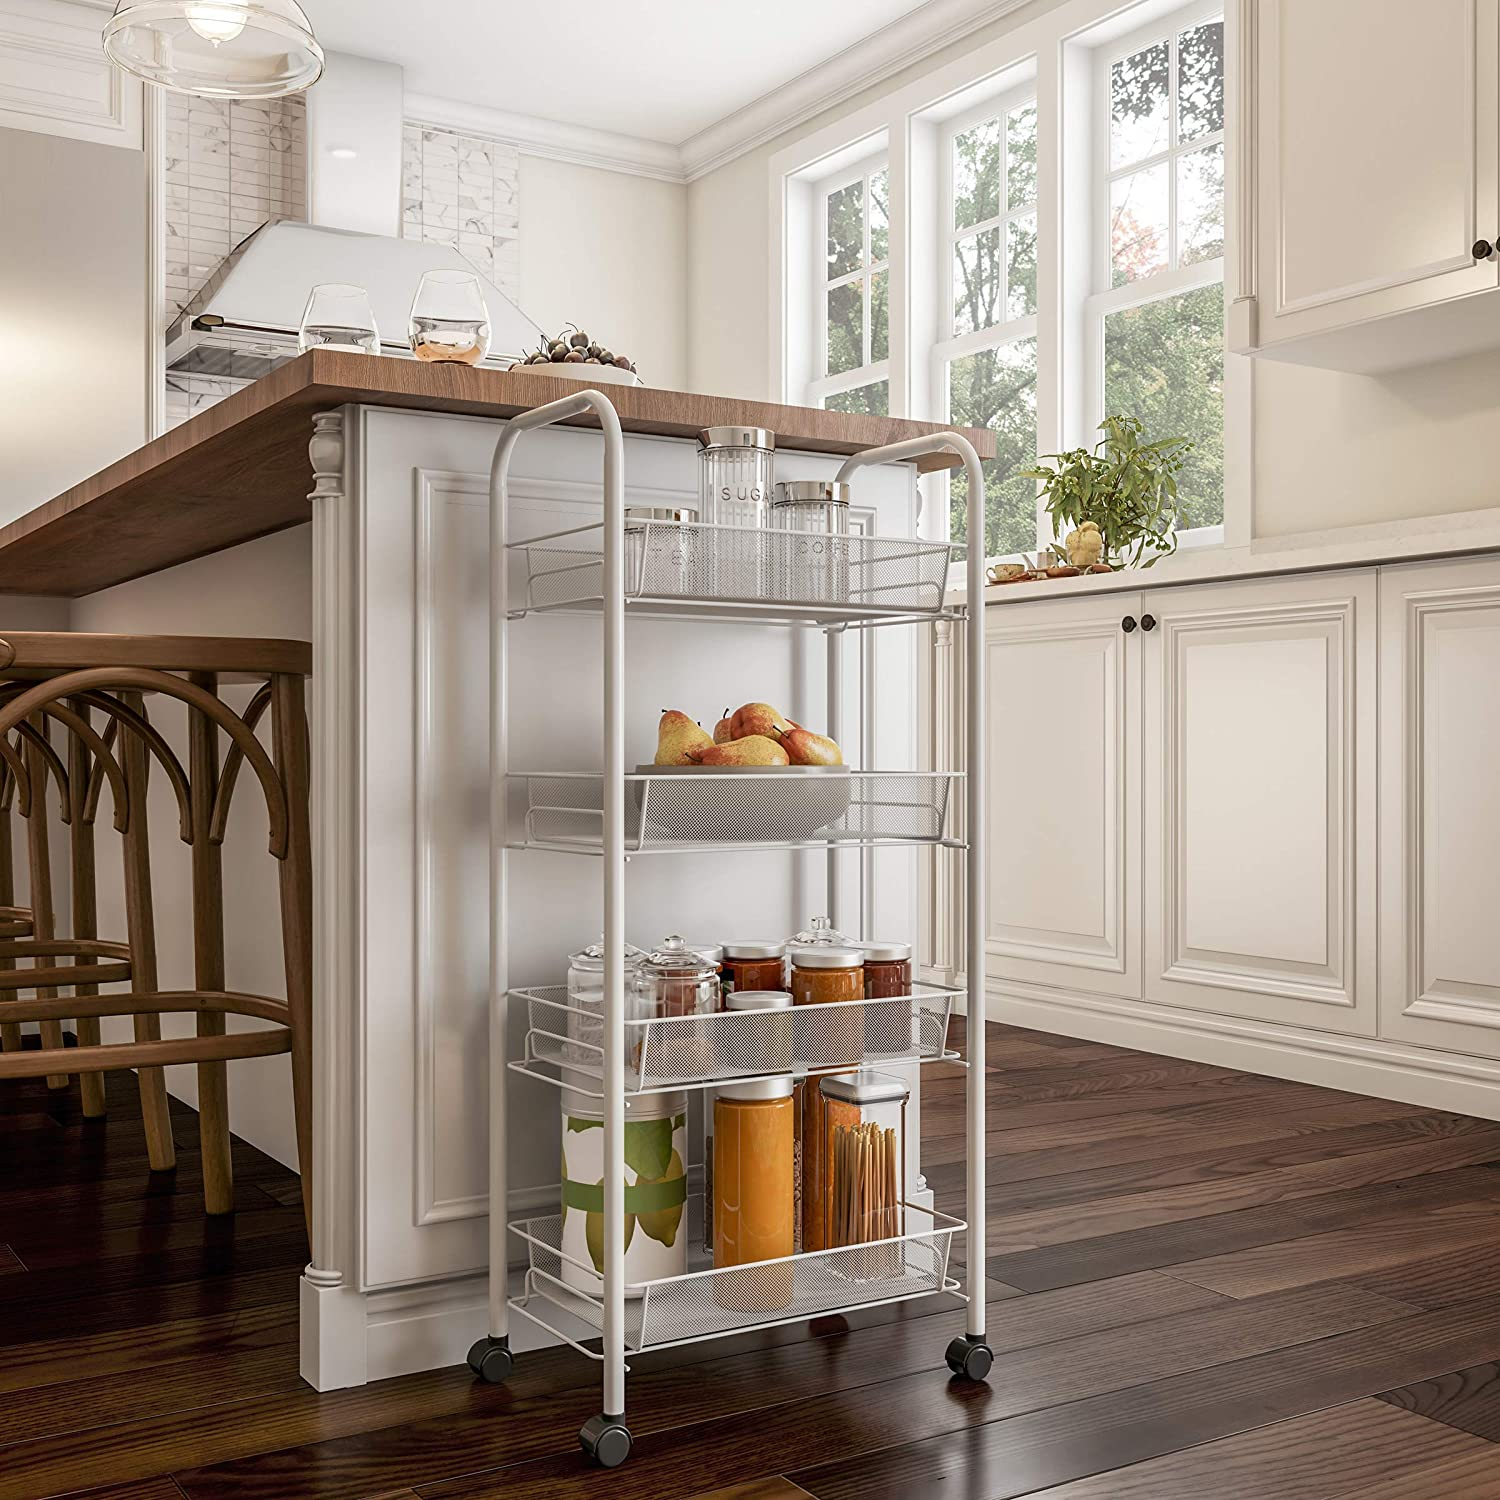 Lavish Home 4-Tiered Narrow Rolling Storage Shelves-Mobile Space Saving Utility Organizer Cart for Kitchen, Bathroom, Laundry, Garage or Office